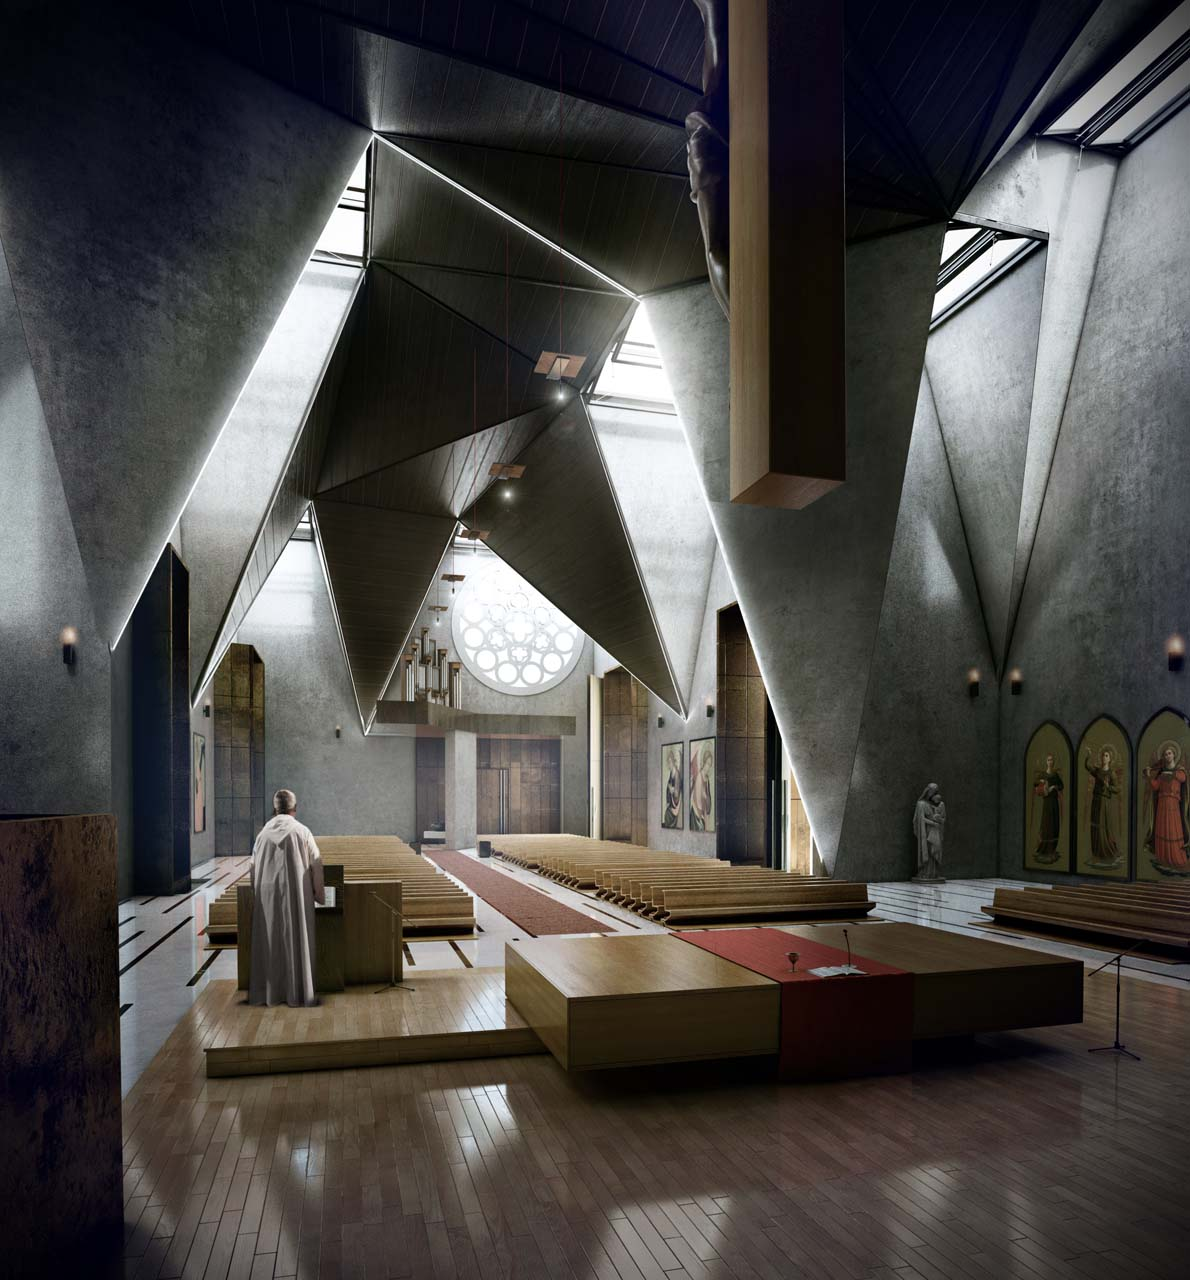 Urban Office Architecture: Haiti Cathedral Design: The Result Of Two Opposite